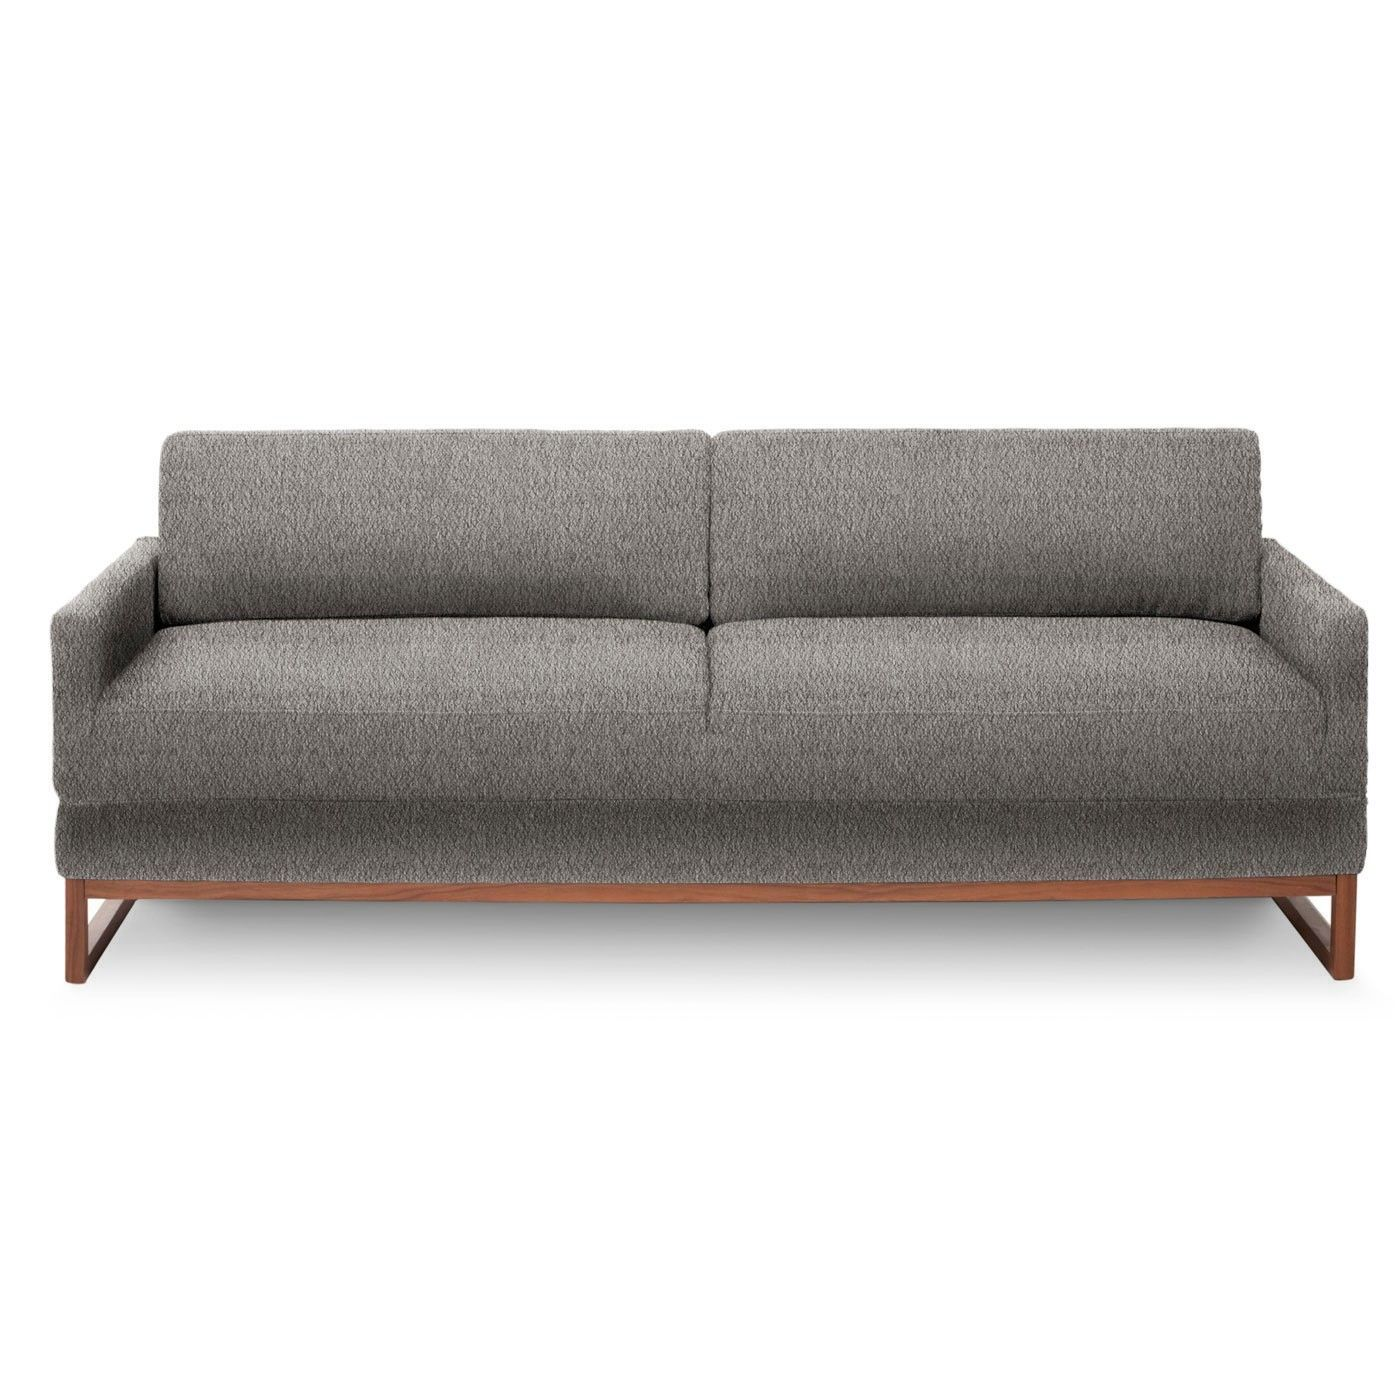 The Diplomat Sleeper Sofa Blu Dot This Is My Dream For Craft Room